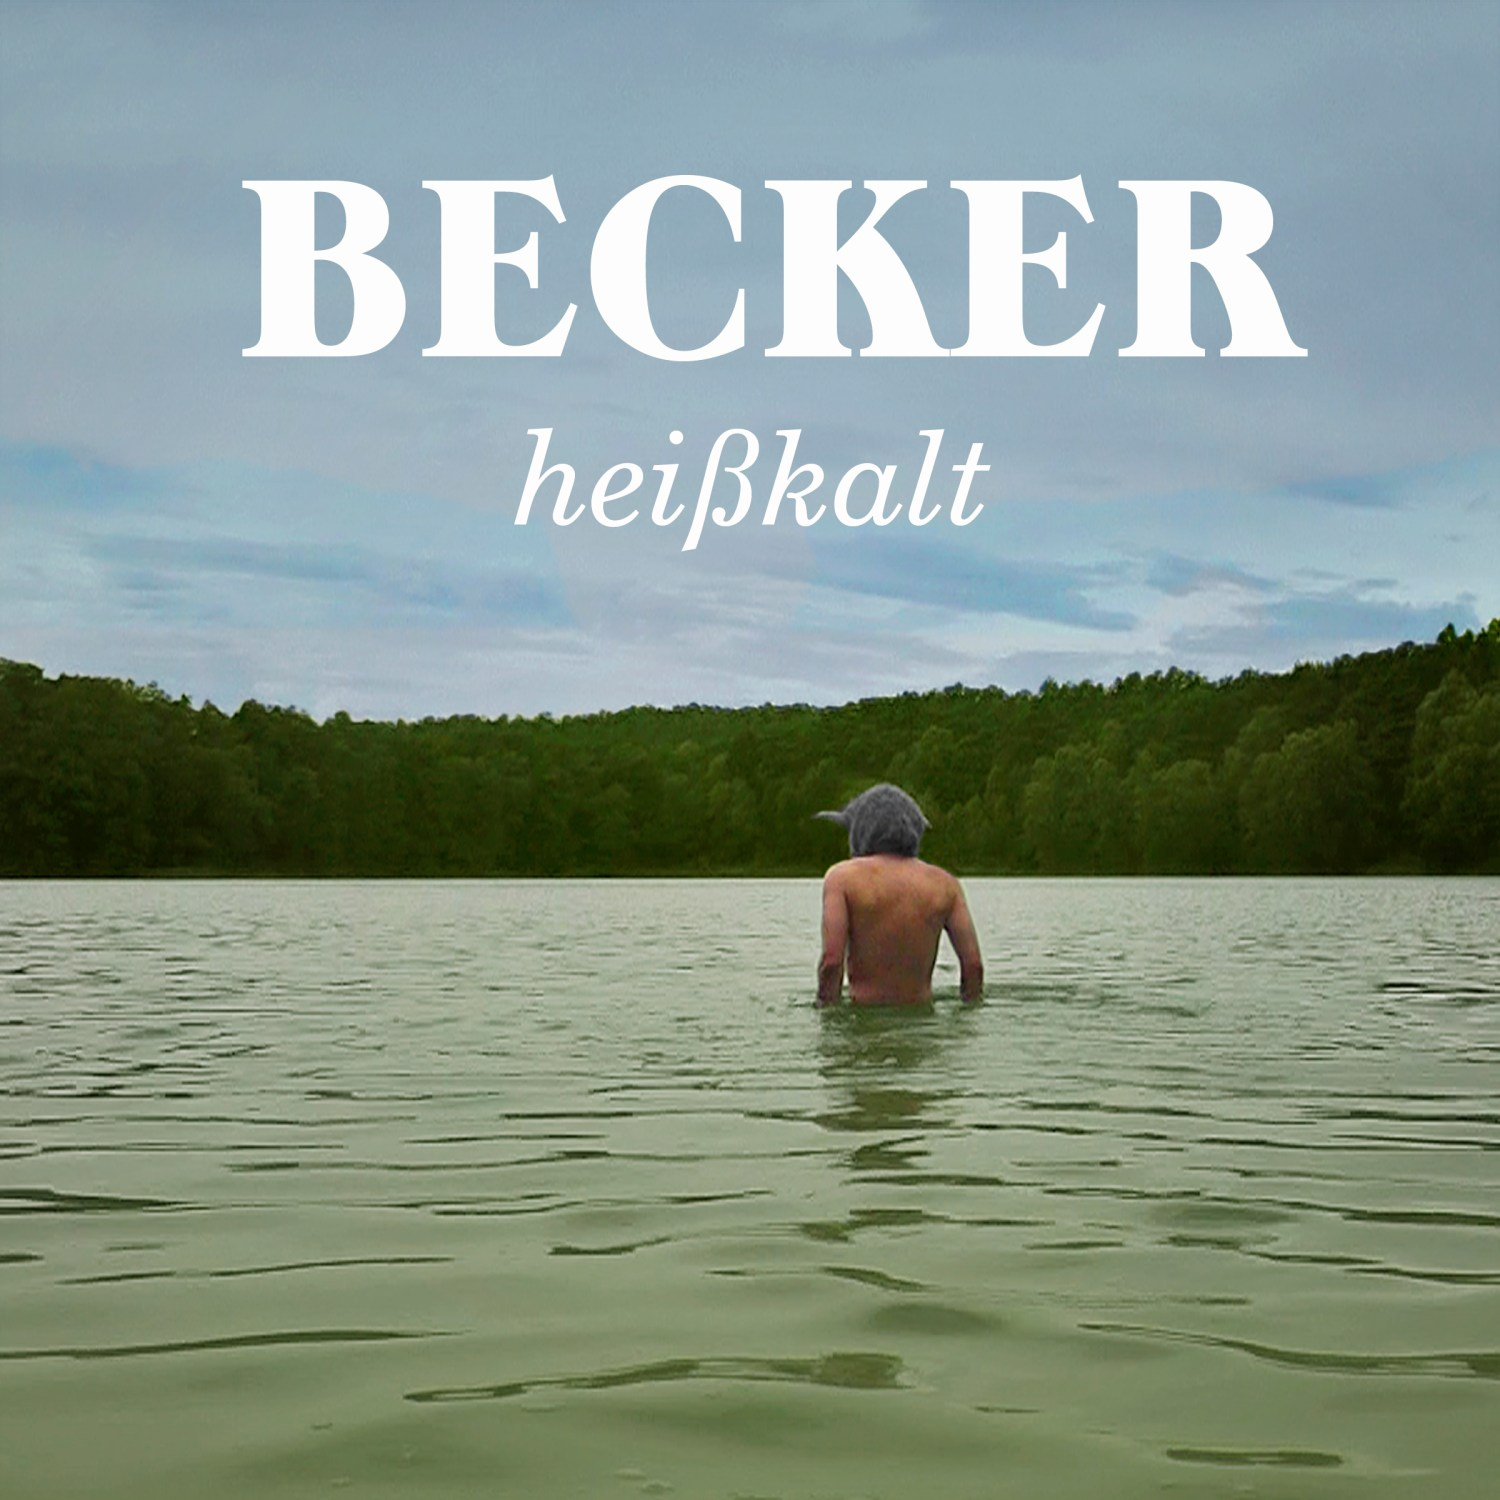 becker_cover_heisskalt_2400